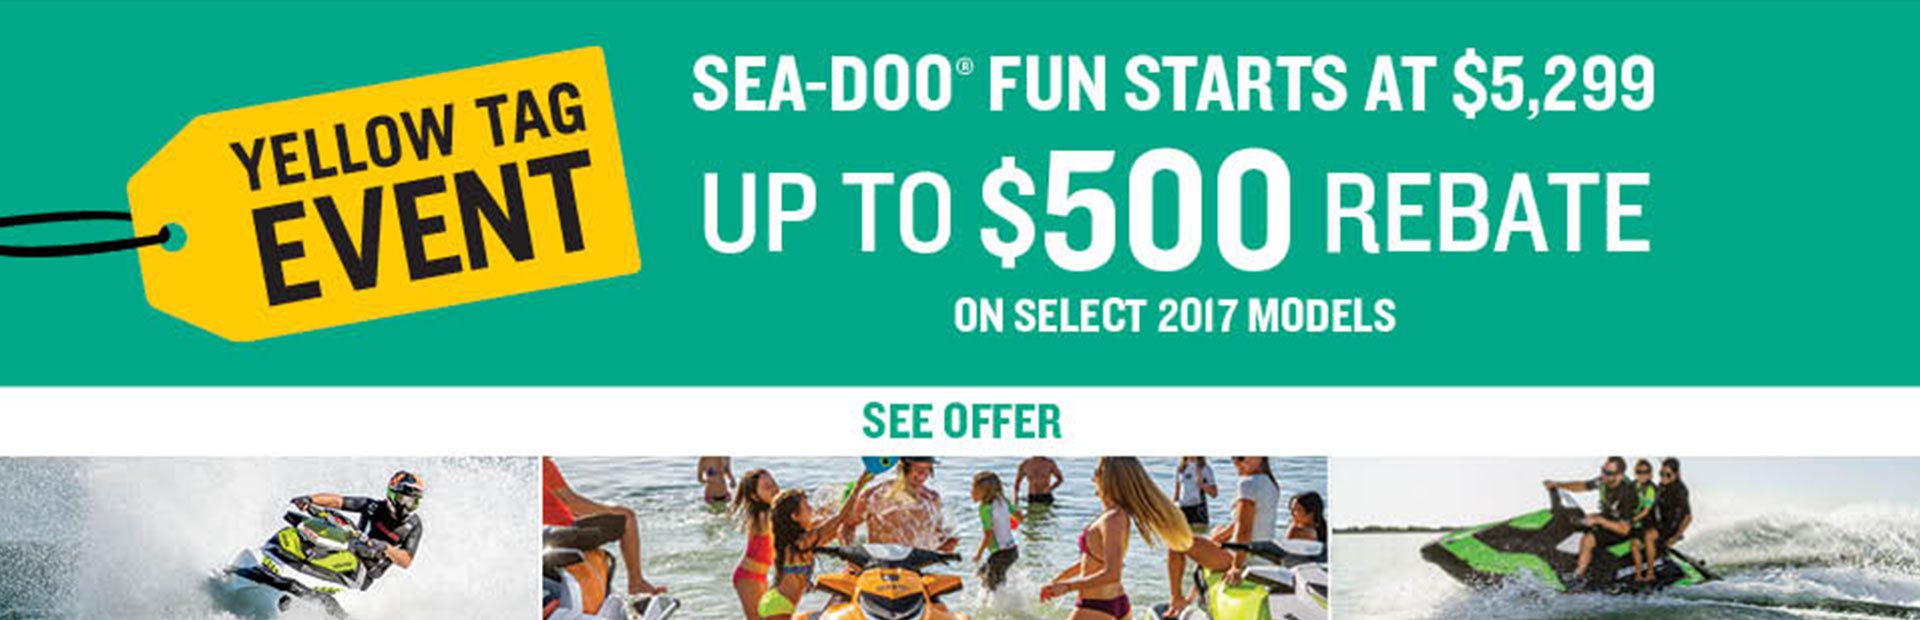 Sea-Doo: Sea-Doo Yellow Tag Event